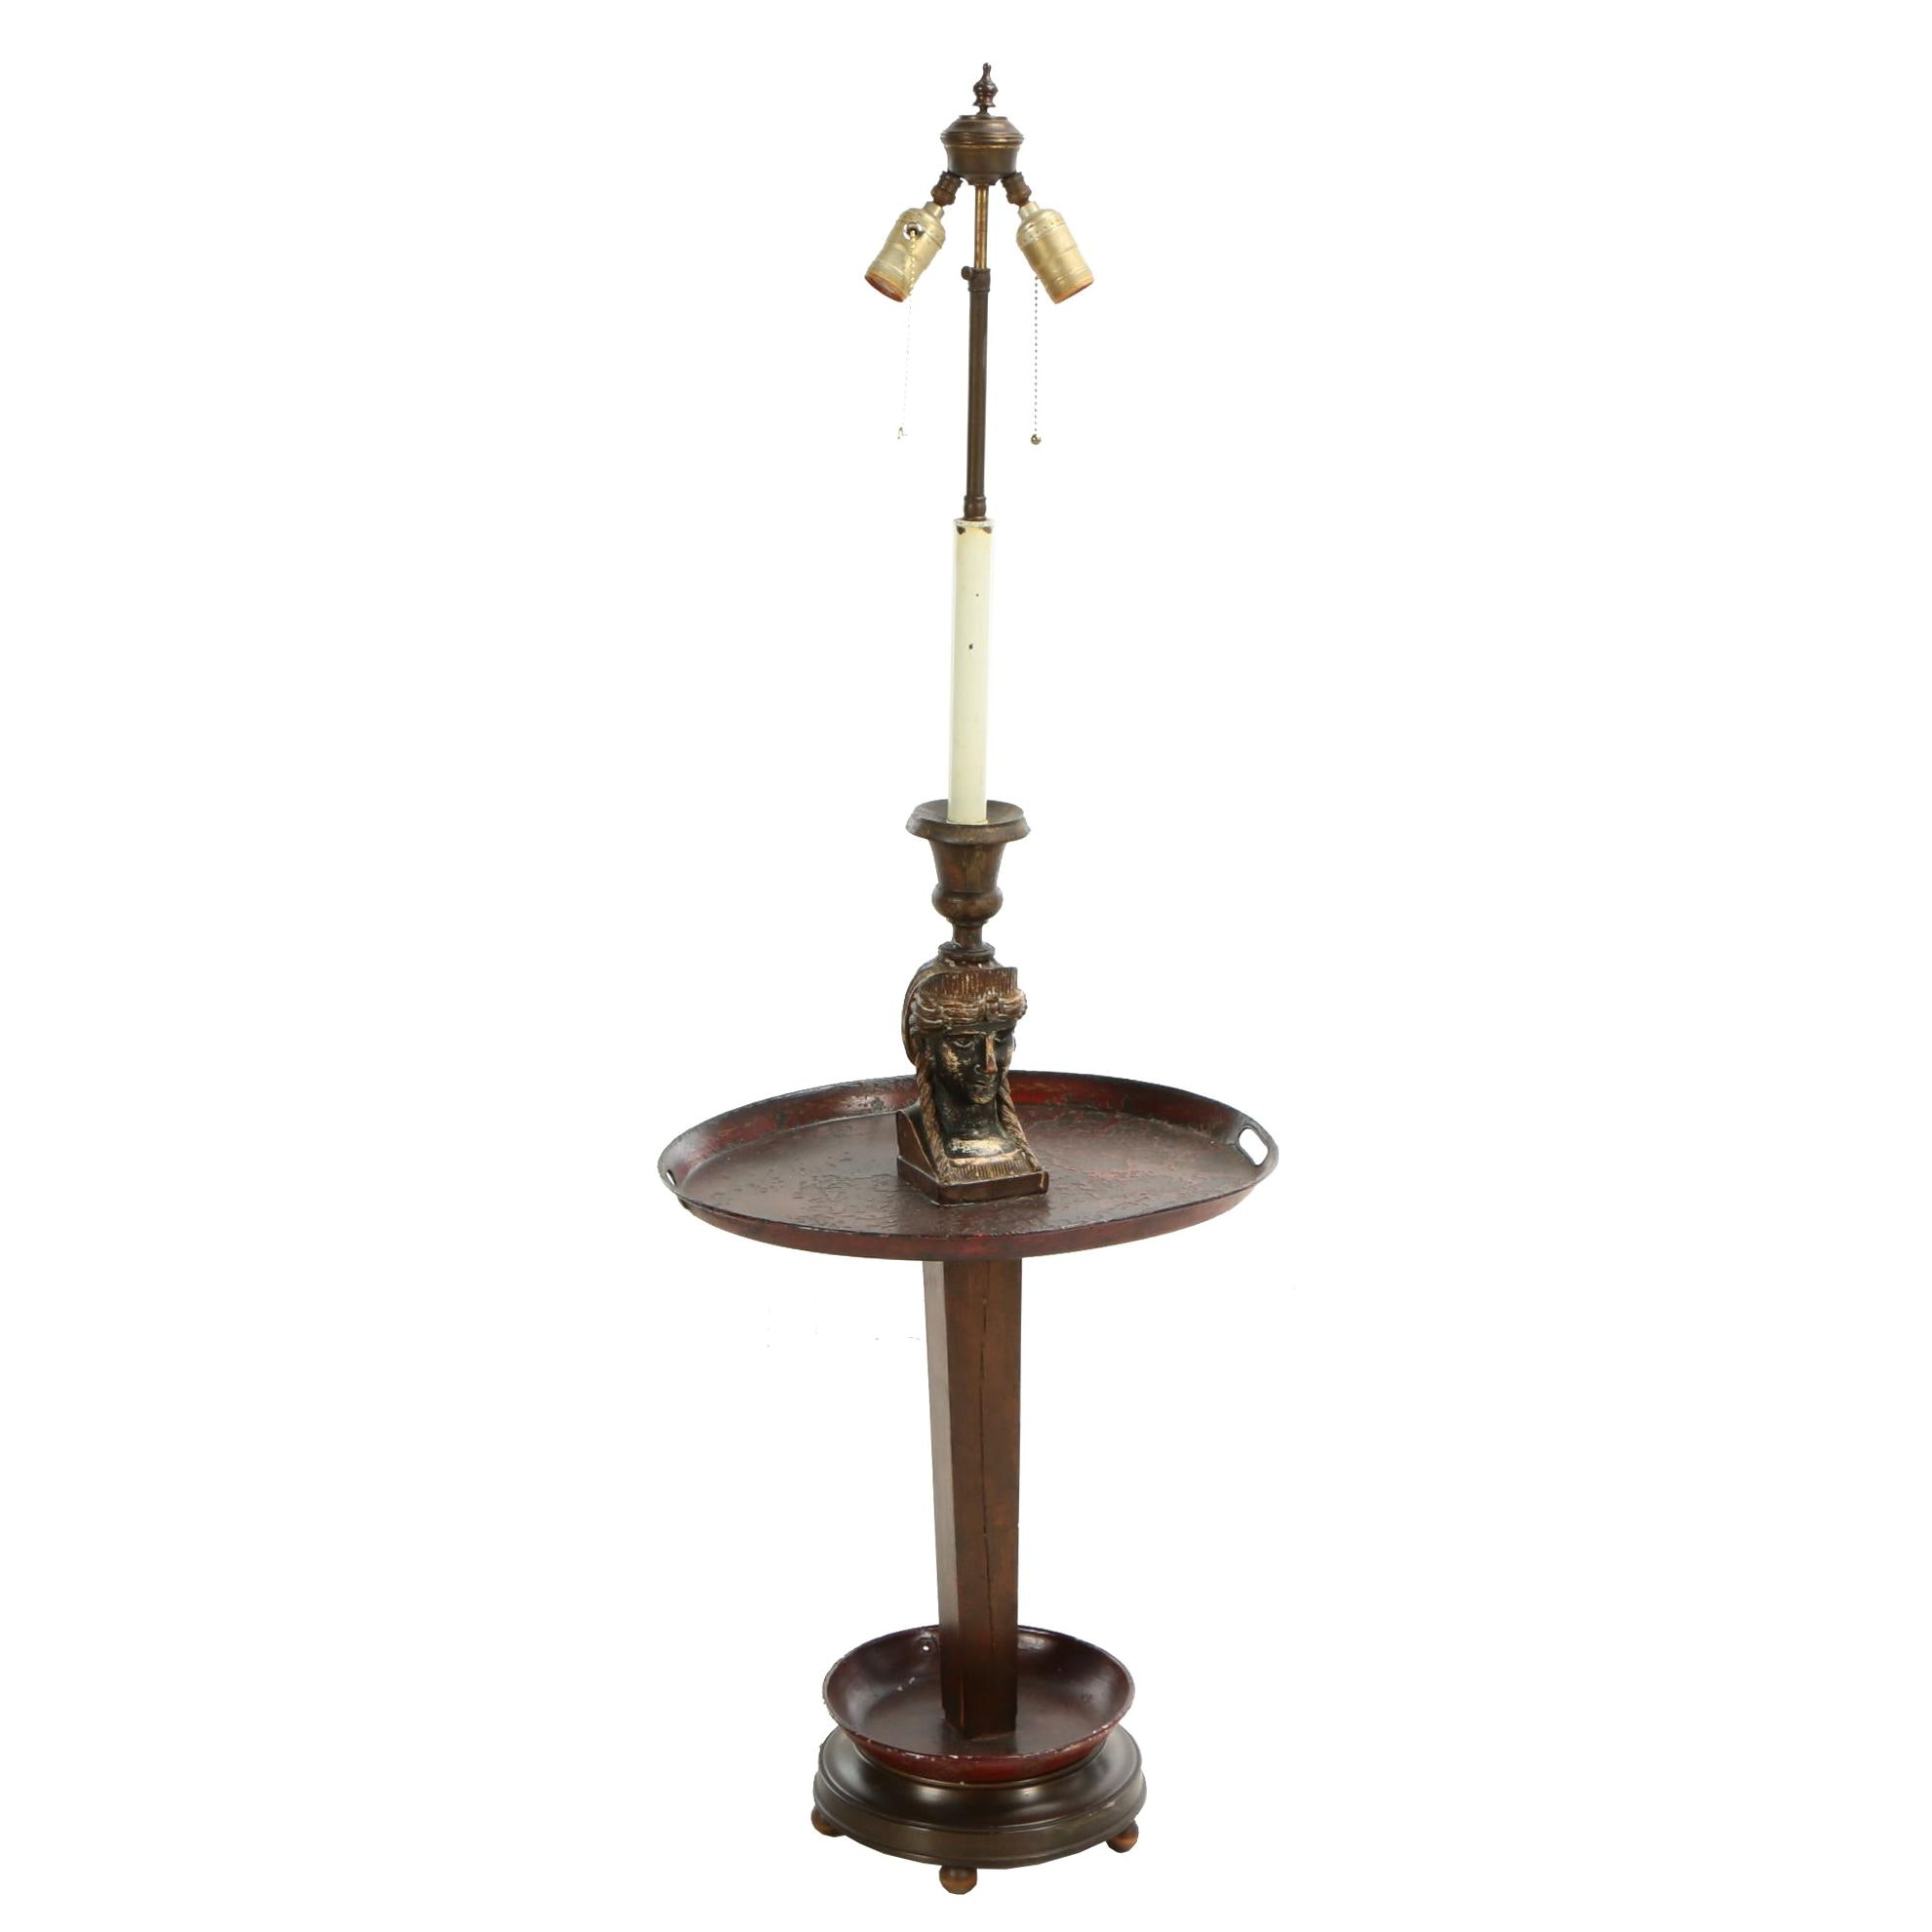 Empire Style Pedestal Floor Lamp with Tole Peinte Tray Table, 20th Century